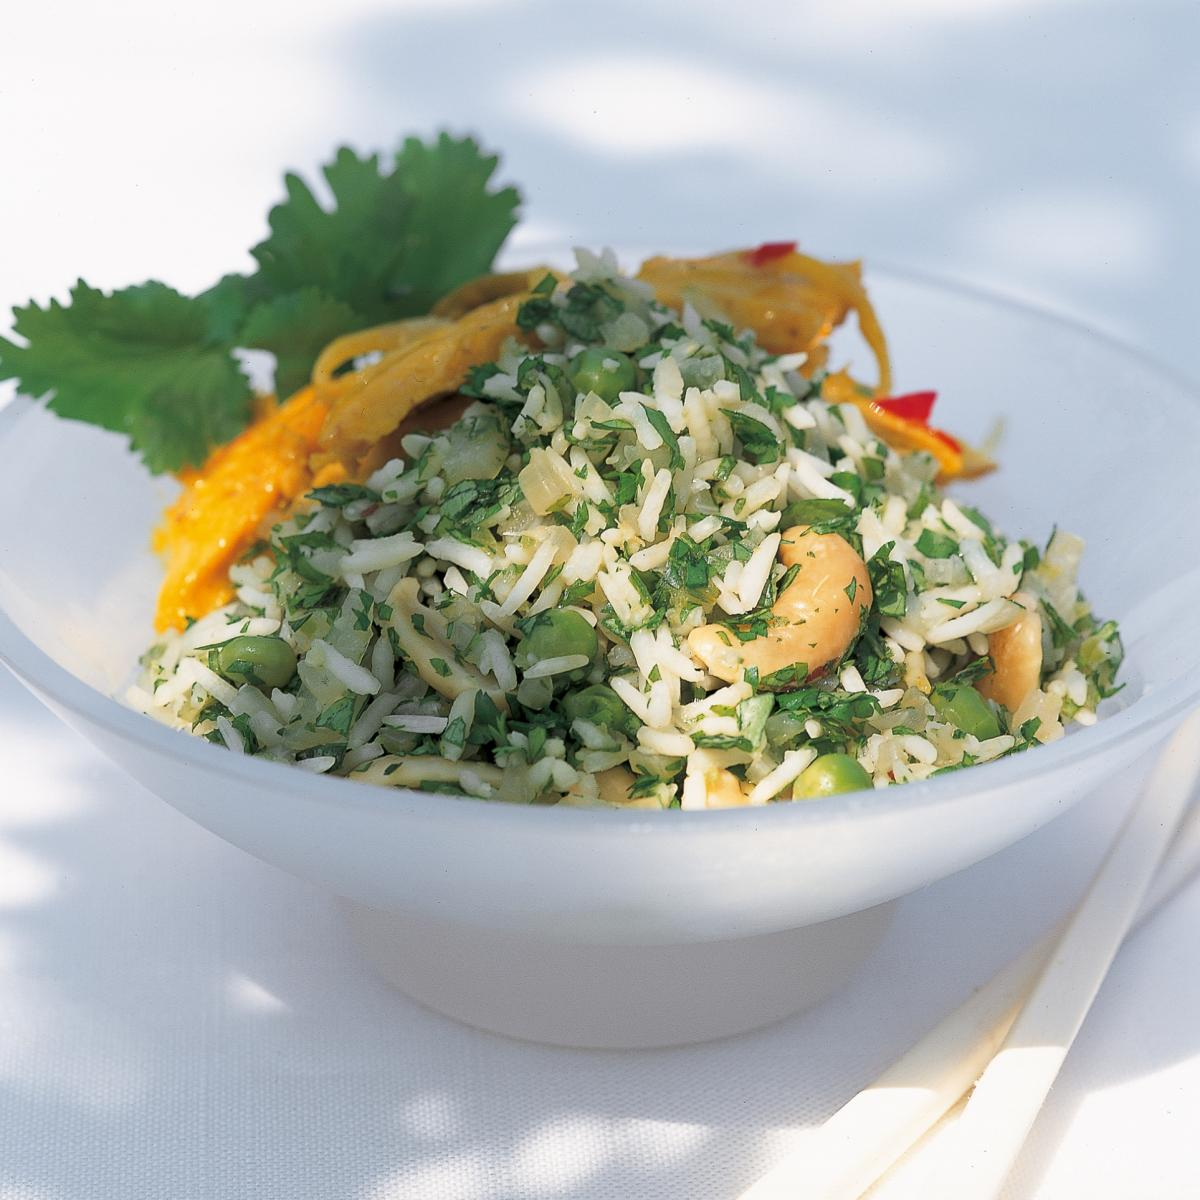 A picture of Delia's Thai Green Rice recipe